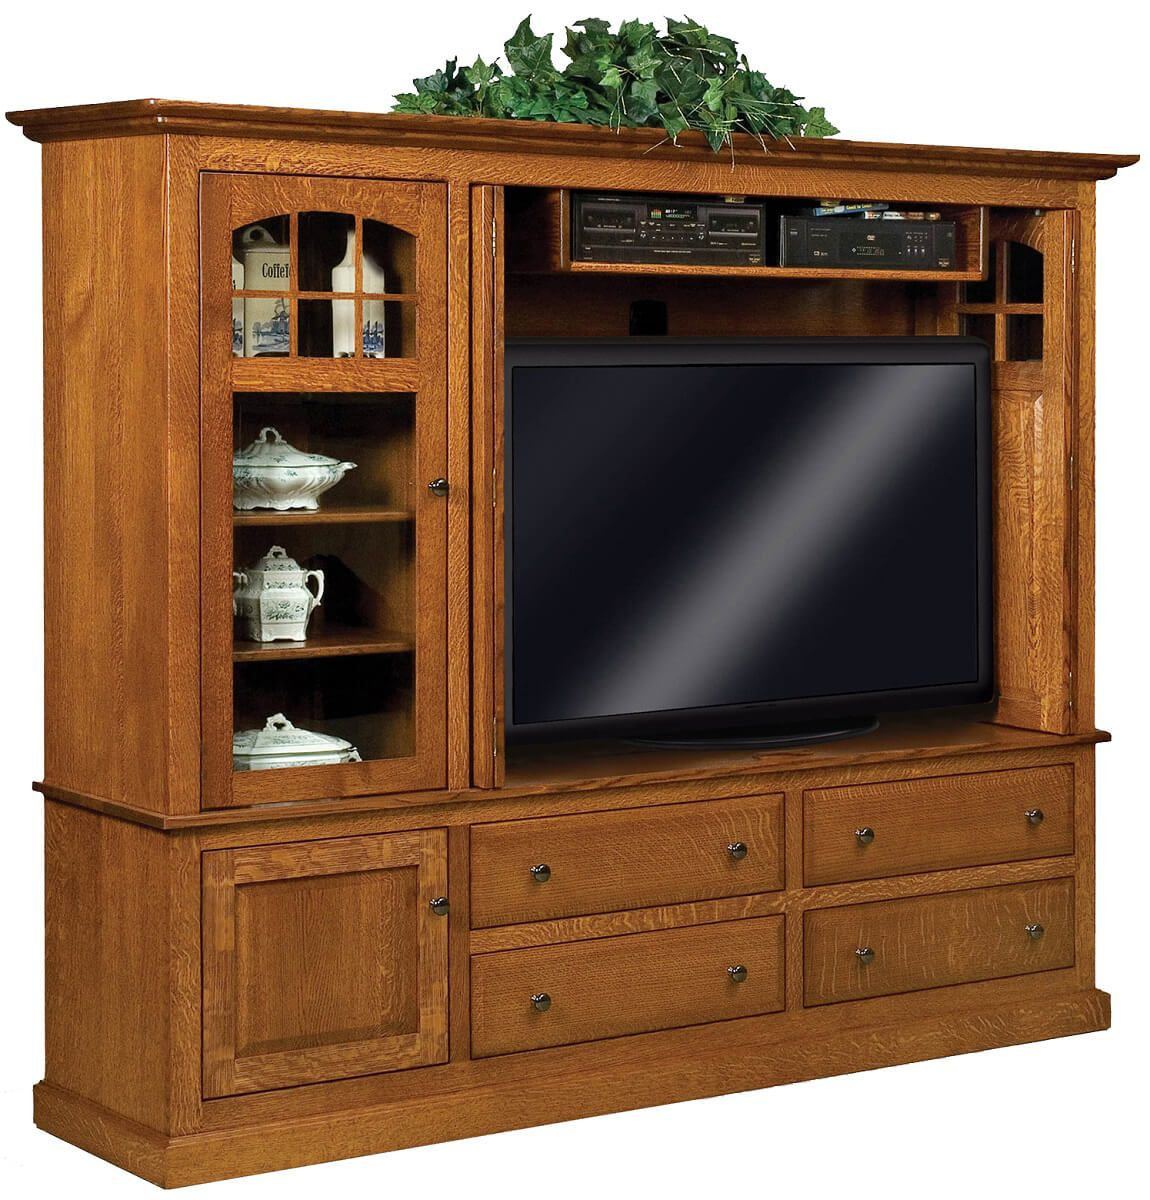 Litchfield Entertainment Center with Storage Opened